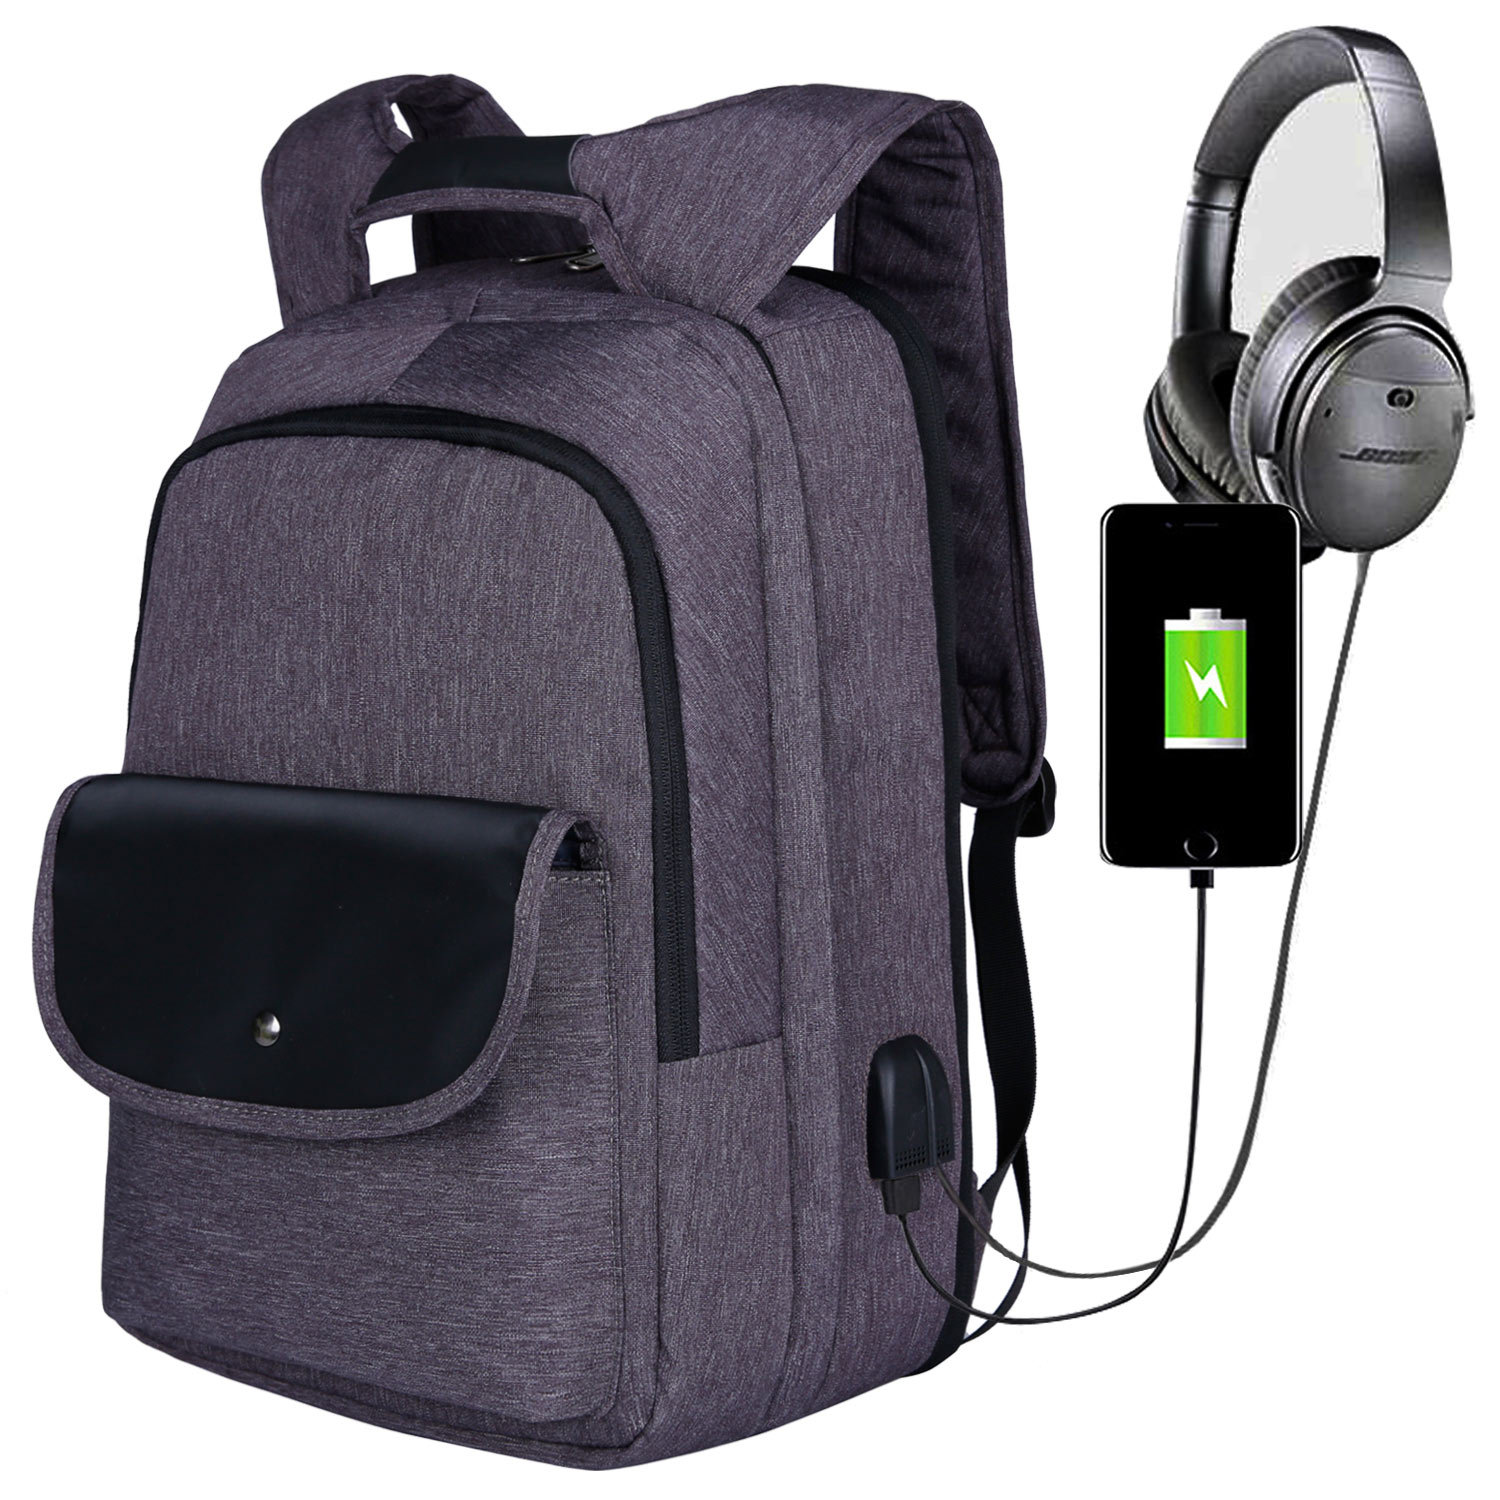 New Anti-theft Detachable Large Capacity USB Business Computer Backpack College Schoolbag Men Student 17.3 Inch Laptop Backpack new 3u ultra short computer case 380mm large panel big power supply ultra short 3u computer case server computer case